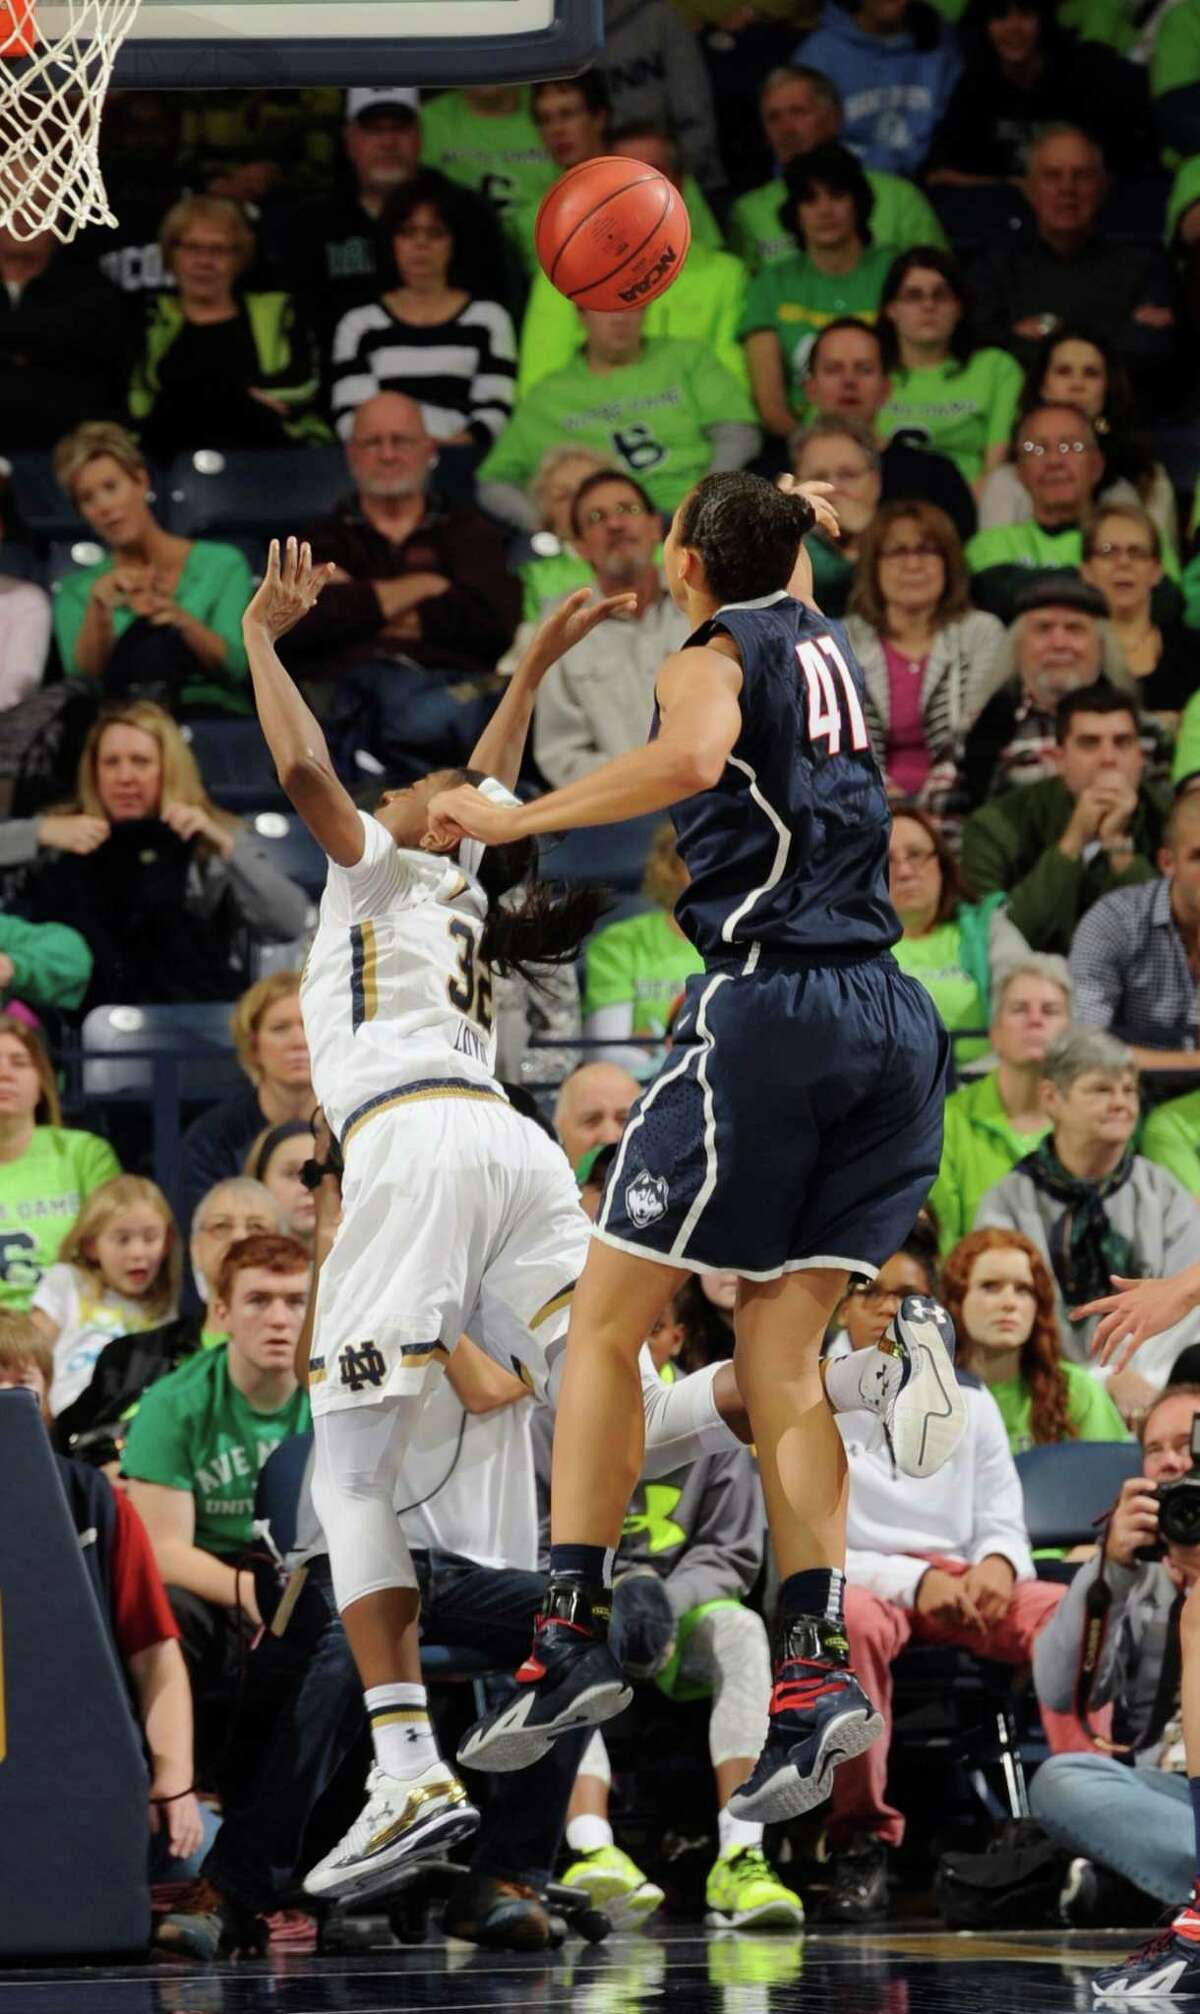 Connecticut forward Kiah Stokes blocks a shot by Notre Dame guard Jewell Loyd, left, in the second half of an NCAA college basketball game with Notre Dame, Saturday Dec. 6, 2014, in South Bend, Ind. Connecticut won 76-58. (AP Photo/Joe Raymond)